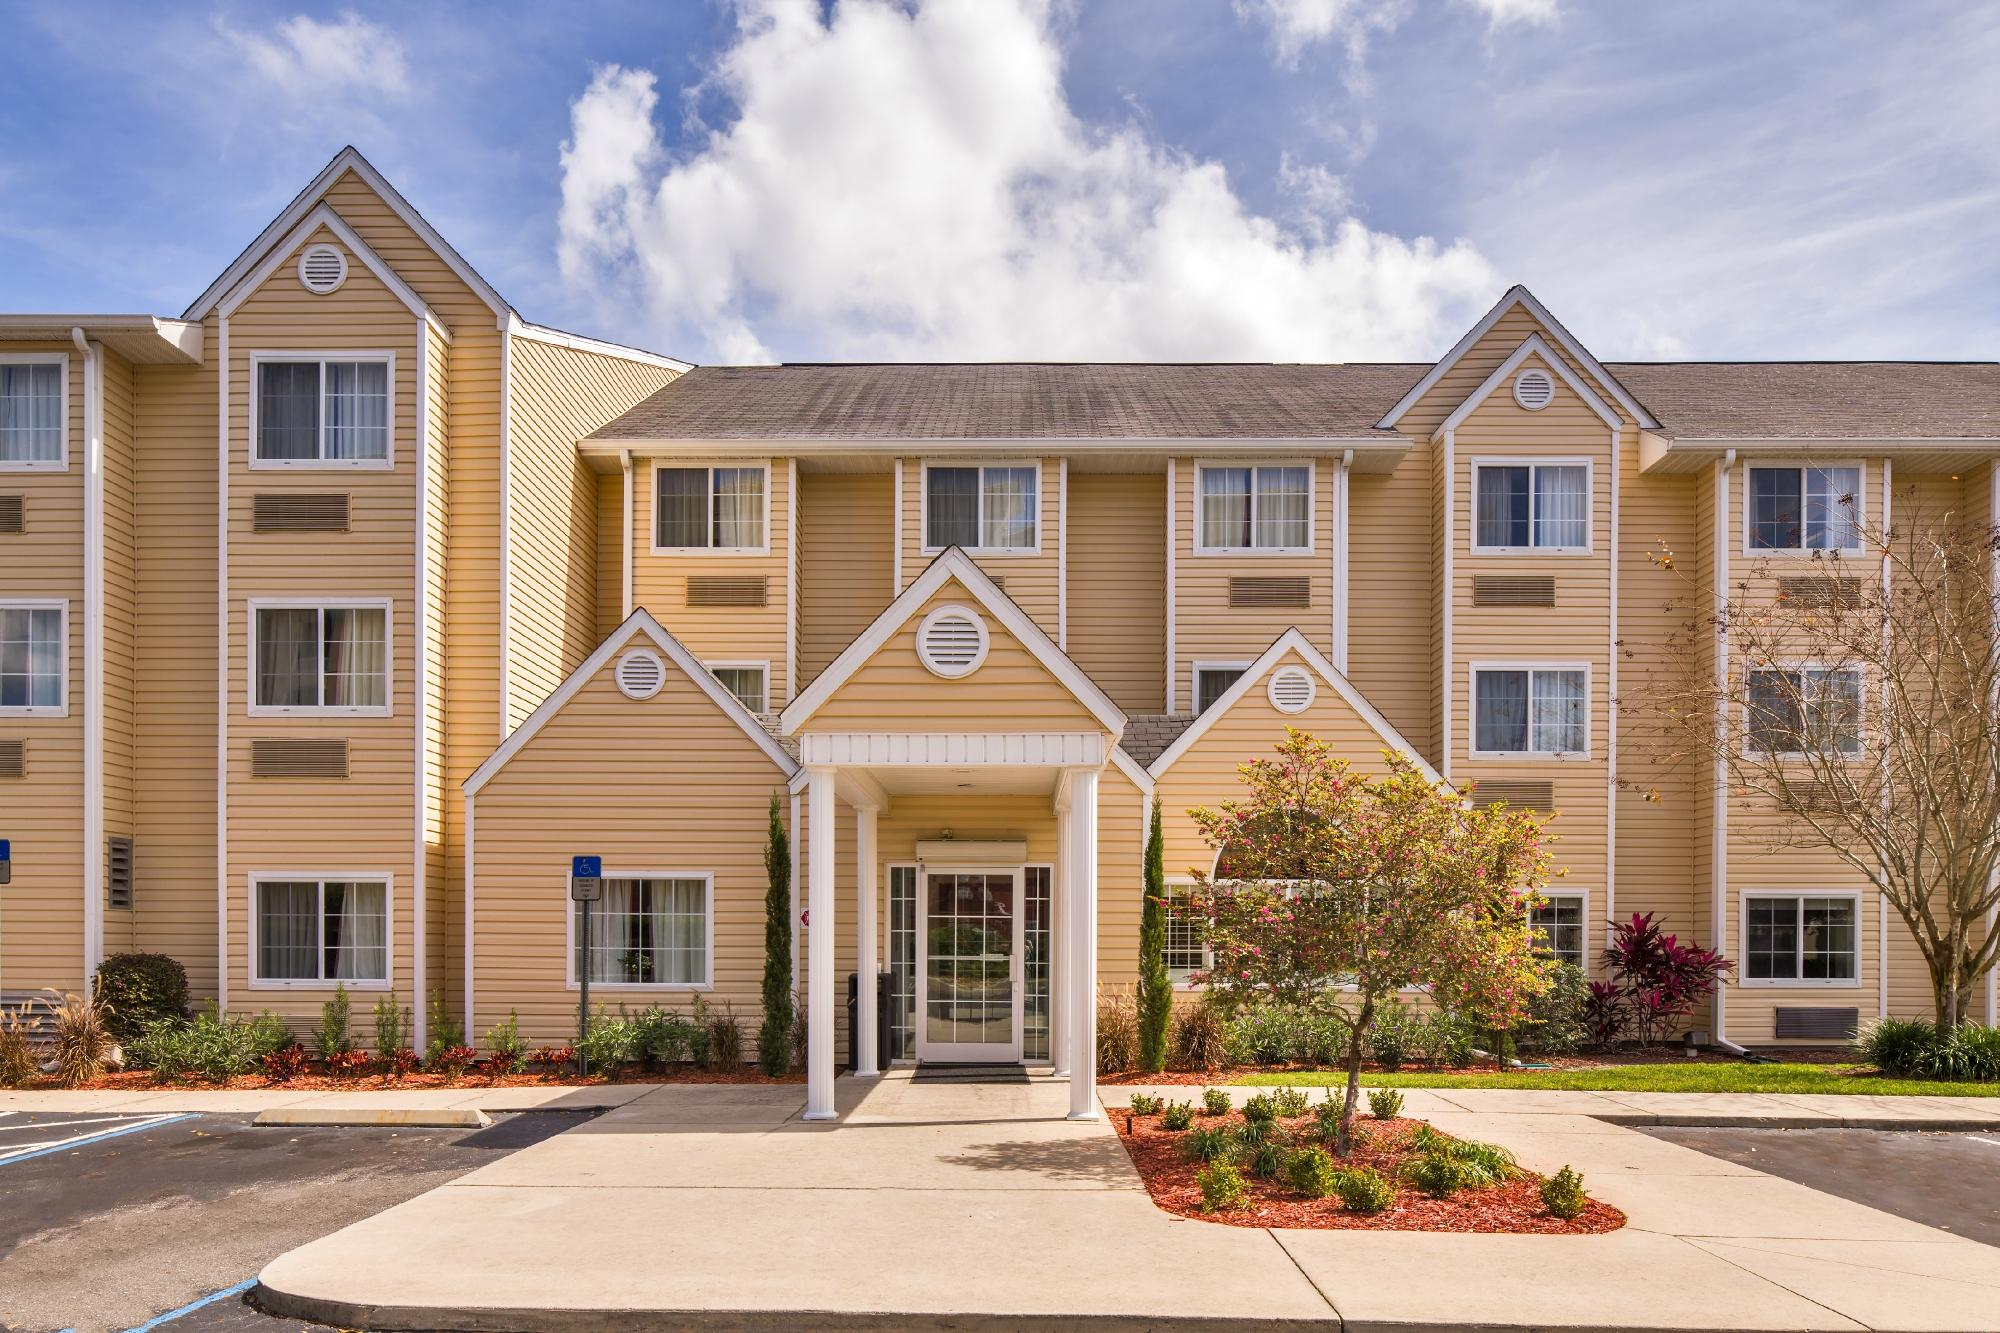 Microtel Inn & Suites by Wyndham Leesburg/Mt Dora